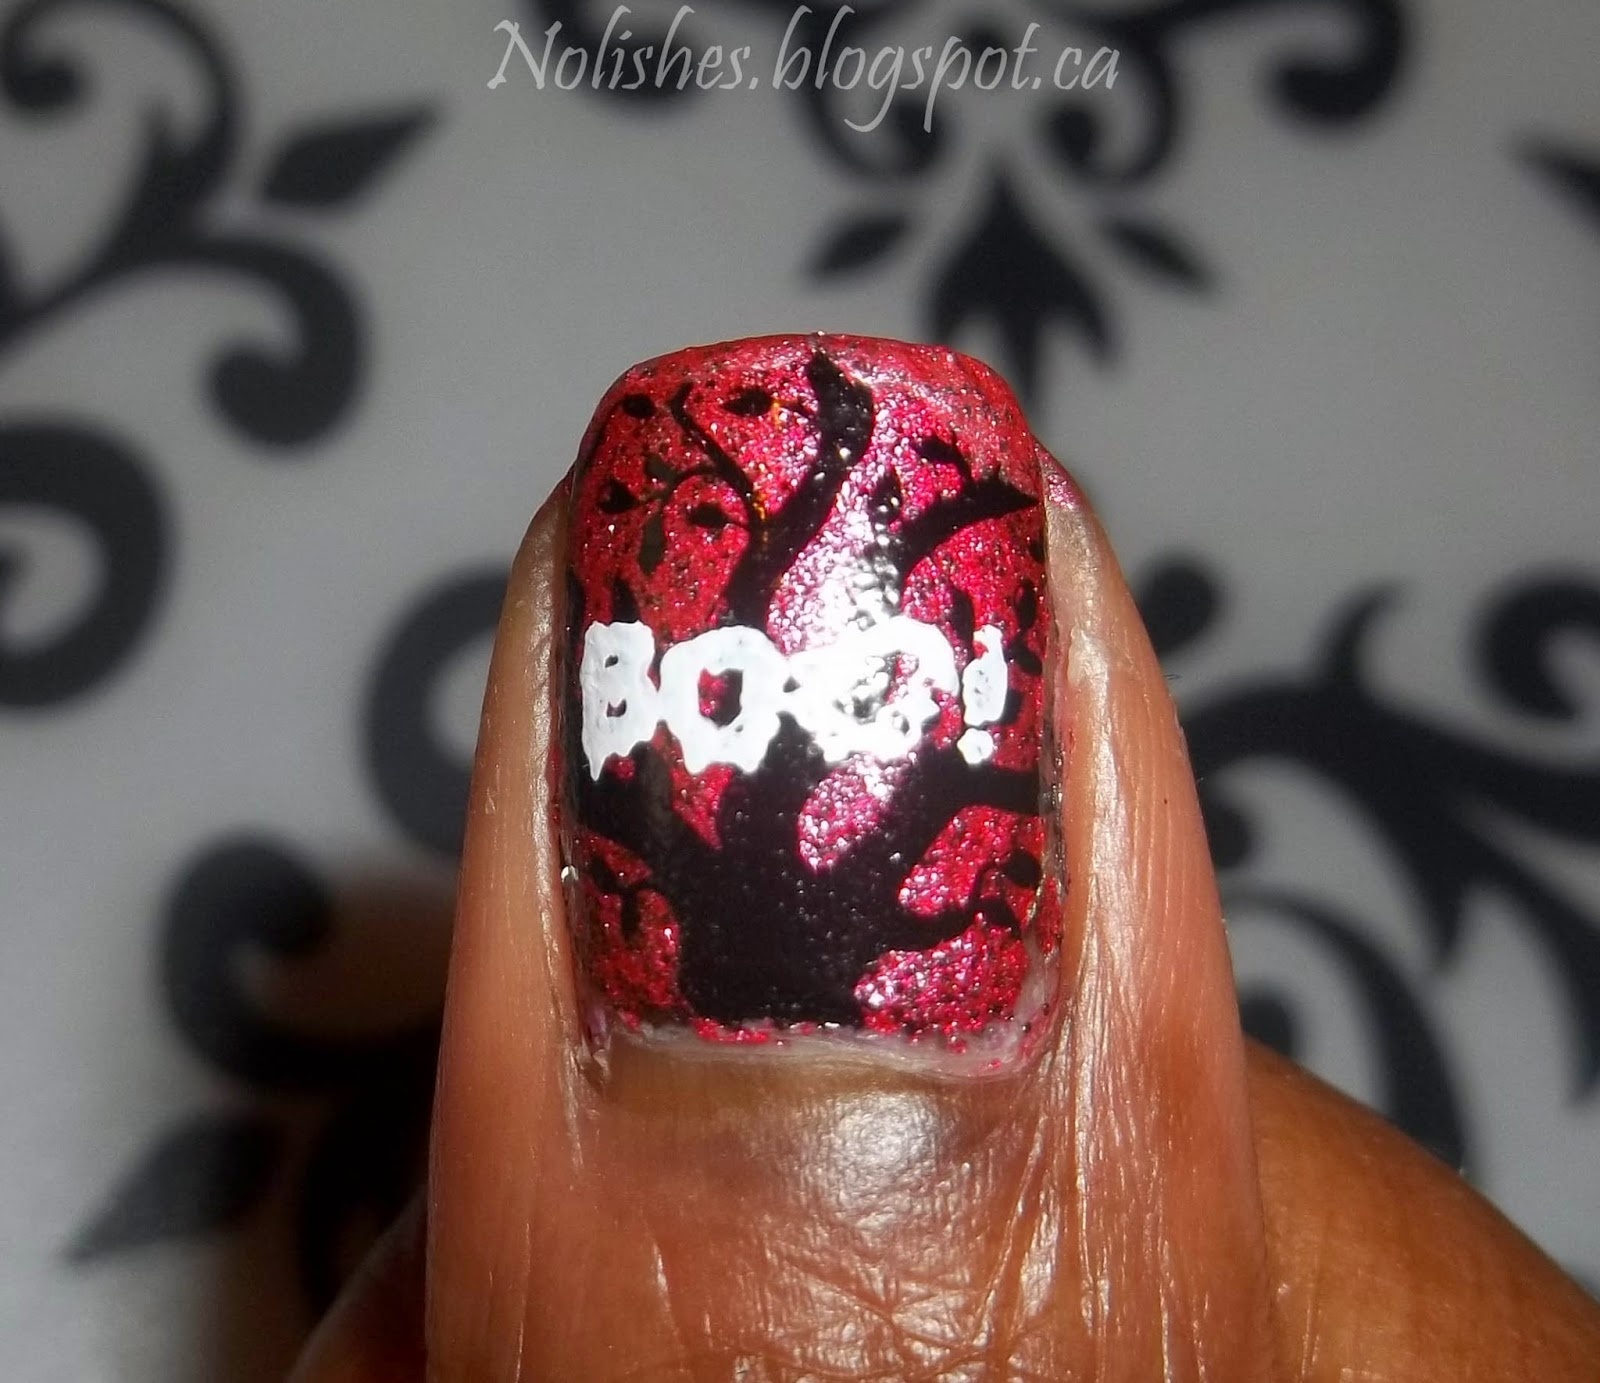 Halloween Themed Nail Stamping Test Mani, using Bunny Nails Stamping Plates BuNa-A, and HD-C. Polishes Used: China Glaze 'I Love Your Guts', and Konad special polish in 'black' and 'white'.